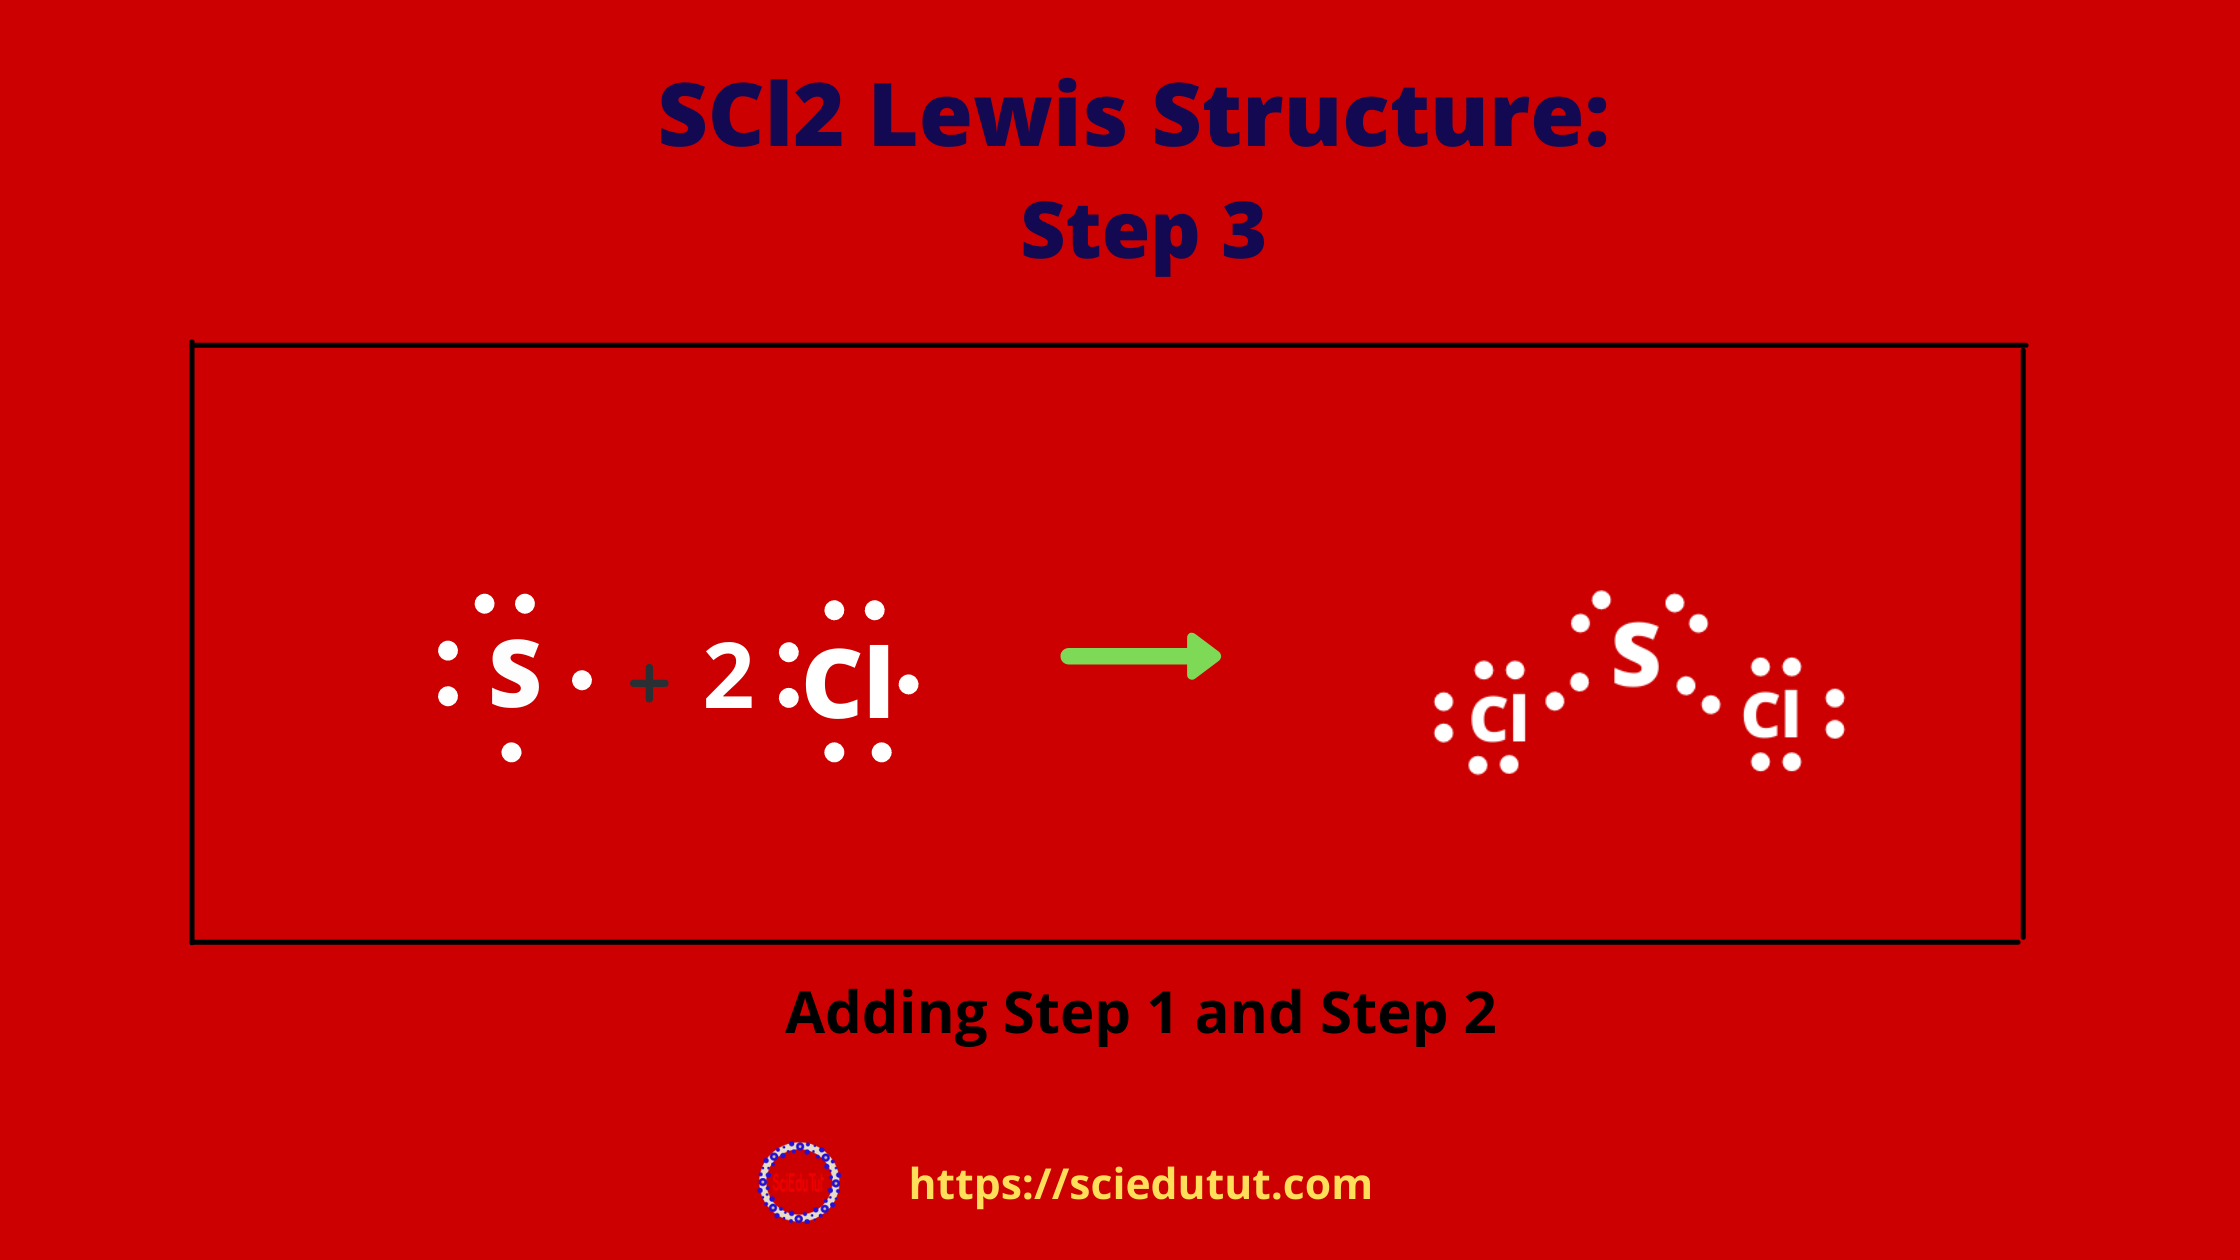 How to draw SCl2 Lewis Structure?